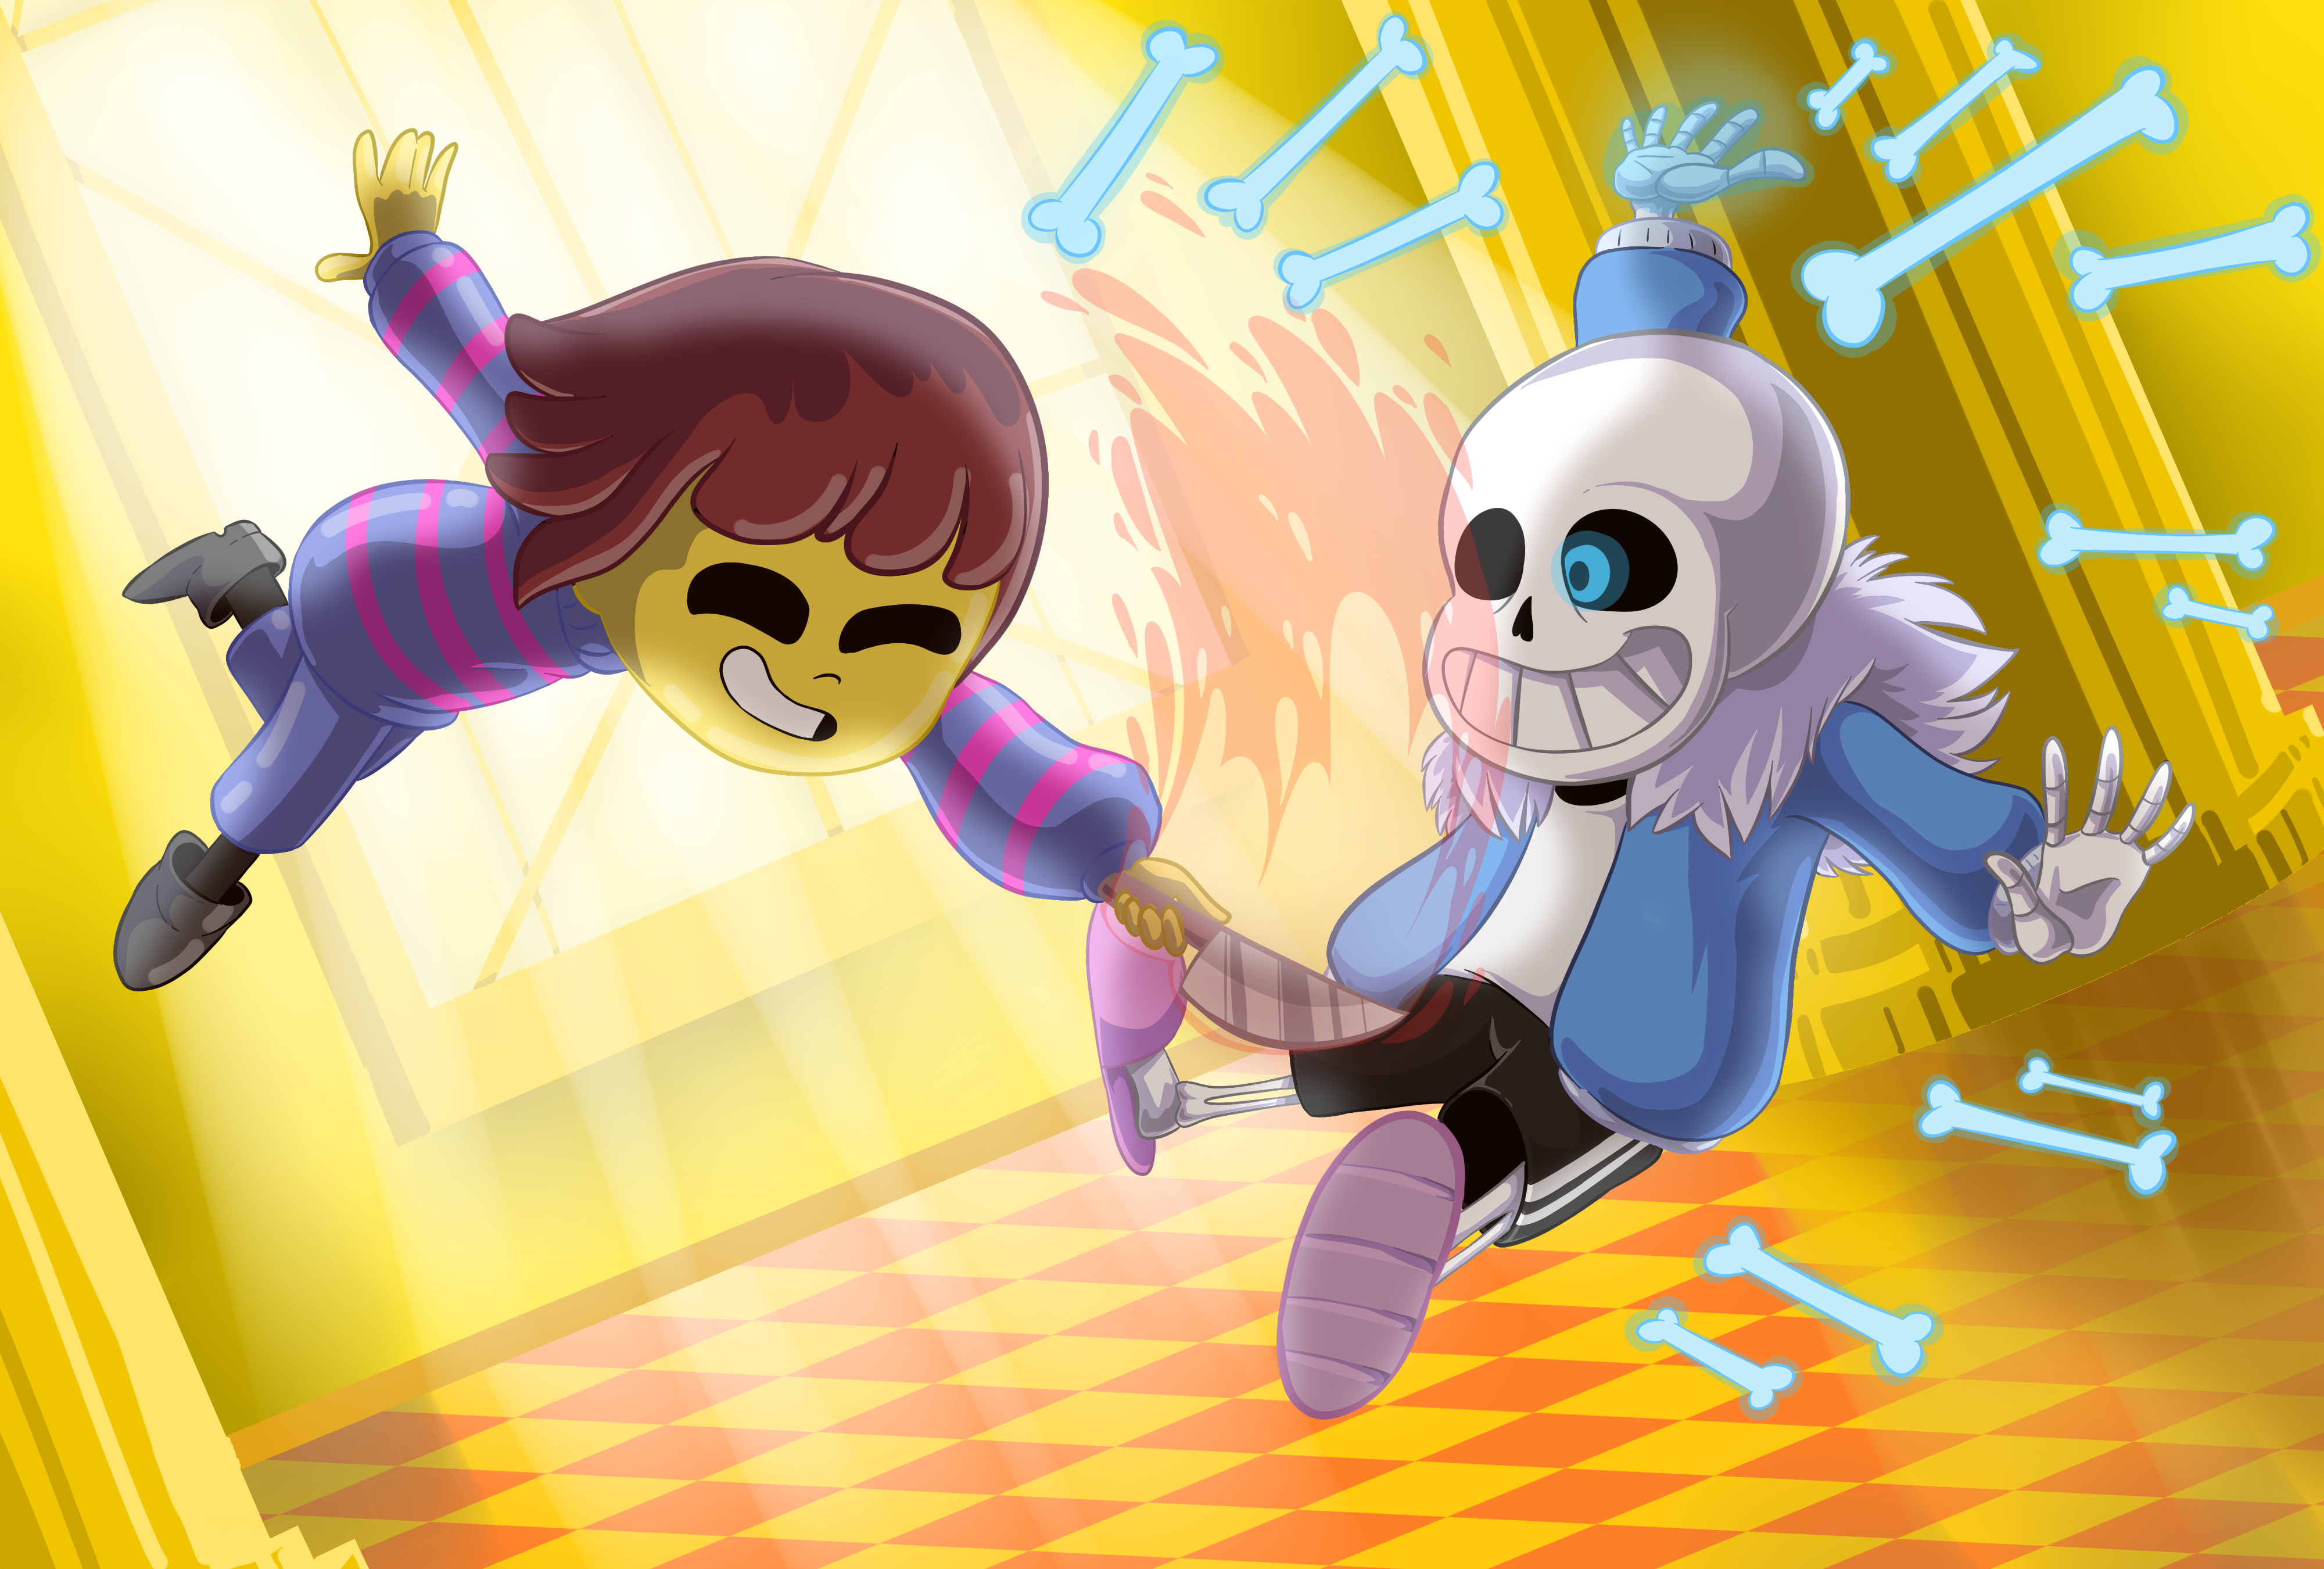 undertale sans vs frisk by woloned woloned on game jolt